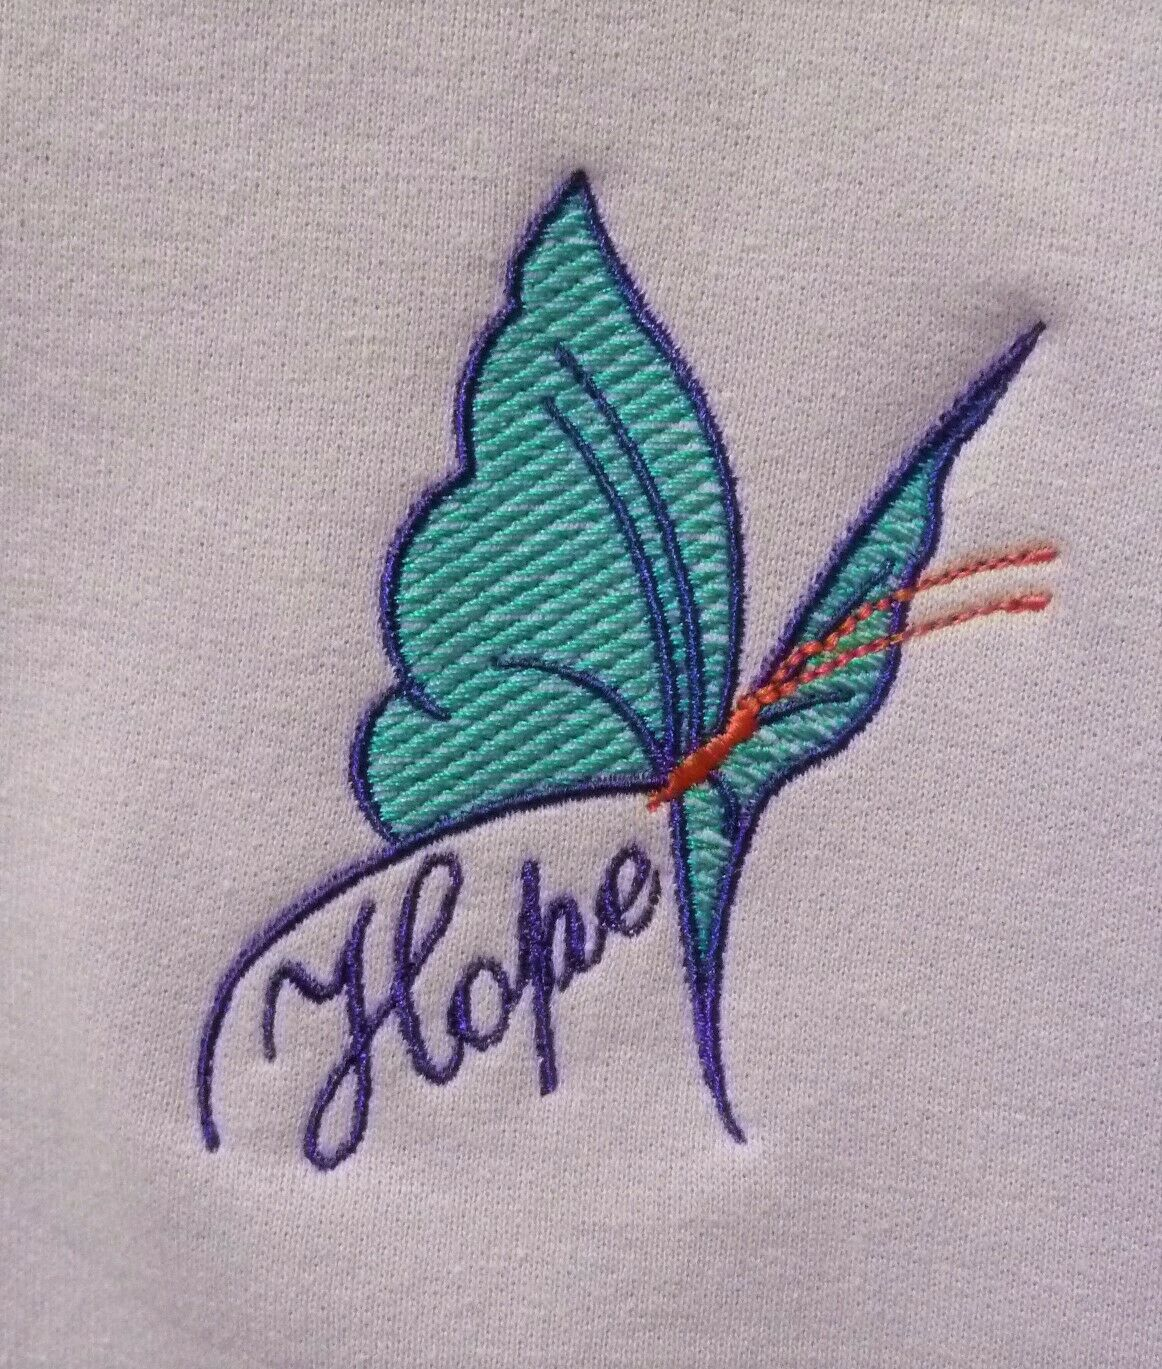 Primary image for Purple/Turquoise Butterfly HOPE Crew M Orchid Sweatshirt Cancer Aware Unisex Nw